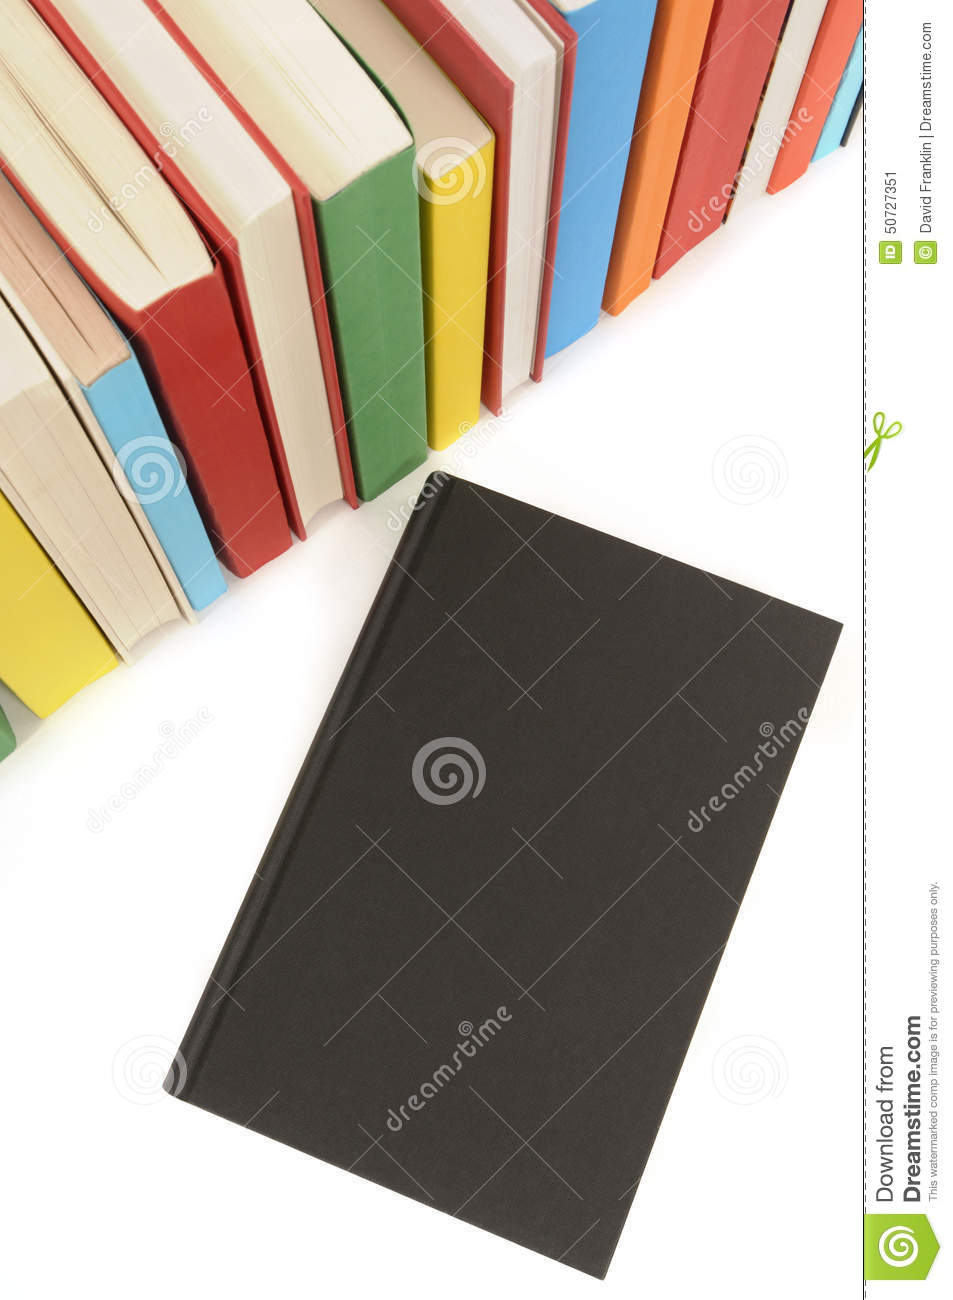 Plain White Book Cover : Plain black book front cover with row of colorful books